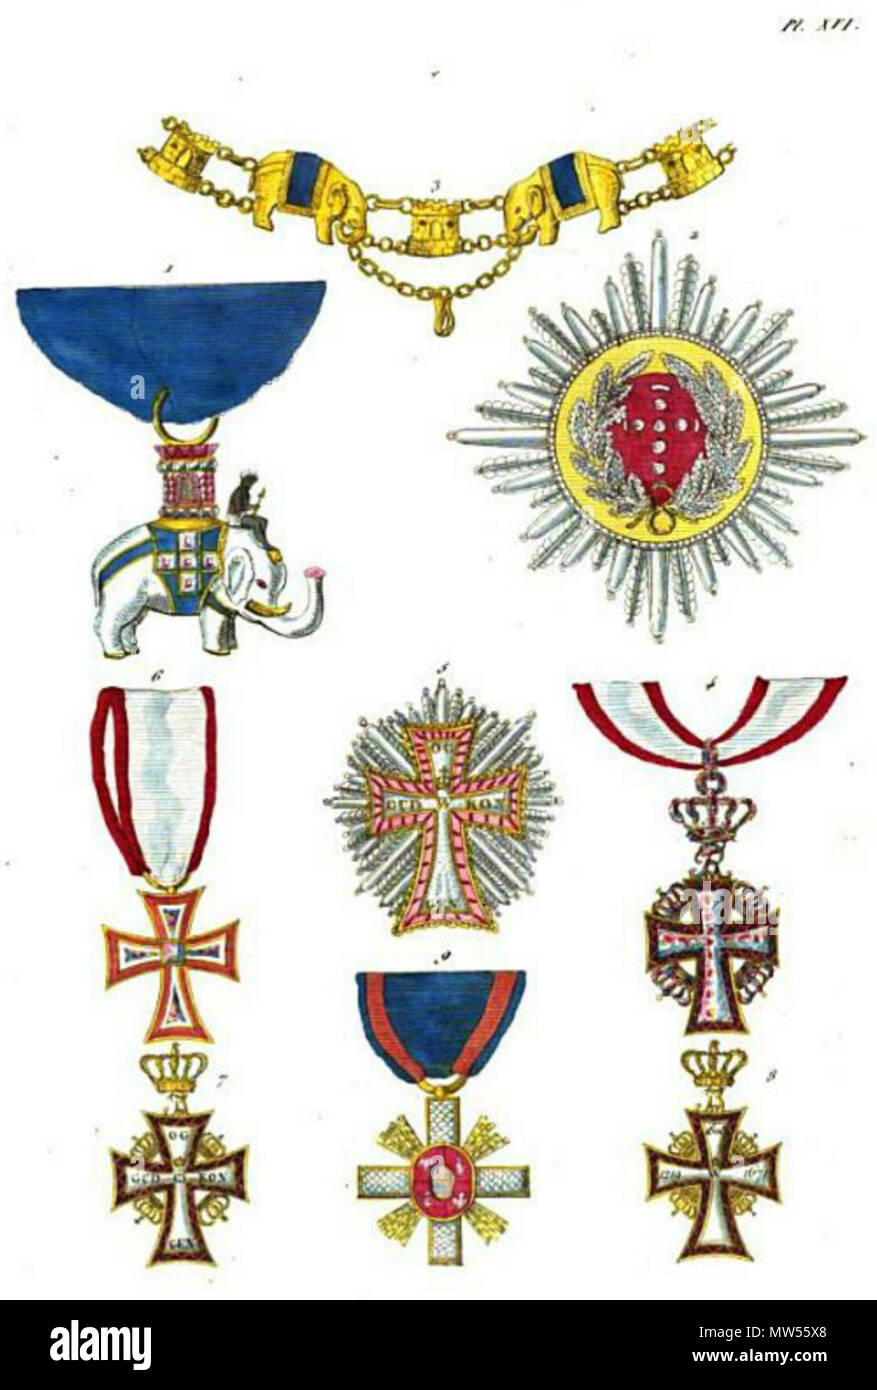 .  Français : Collection historique des ordres de chevalerie civils et militaires... English: Collection of historical orders of chivalry civil and military...: 1. Order of Elephant, badge (Denmark) 2. Order of Elephant, star (Denmark) 3. Order of Elephant, collar (Denmark) 4. Order of Dannebrog, badge 1st class (Denmark) 5. Order of Dannebrog, star (Denmark) 6. Order of Dannebrog, badge 2nd class with diamonds (Denmark) 7. Order of Dannebrog, badge 4th class obverse (Denmark) 8. Order of Dannebrog, badge 4th class reverse (Denmark) 9. Order of Fidelity or Ordre de l'Union Parfaite (Denmark)   - Stock Image